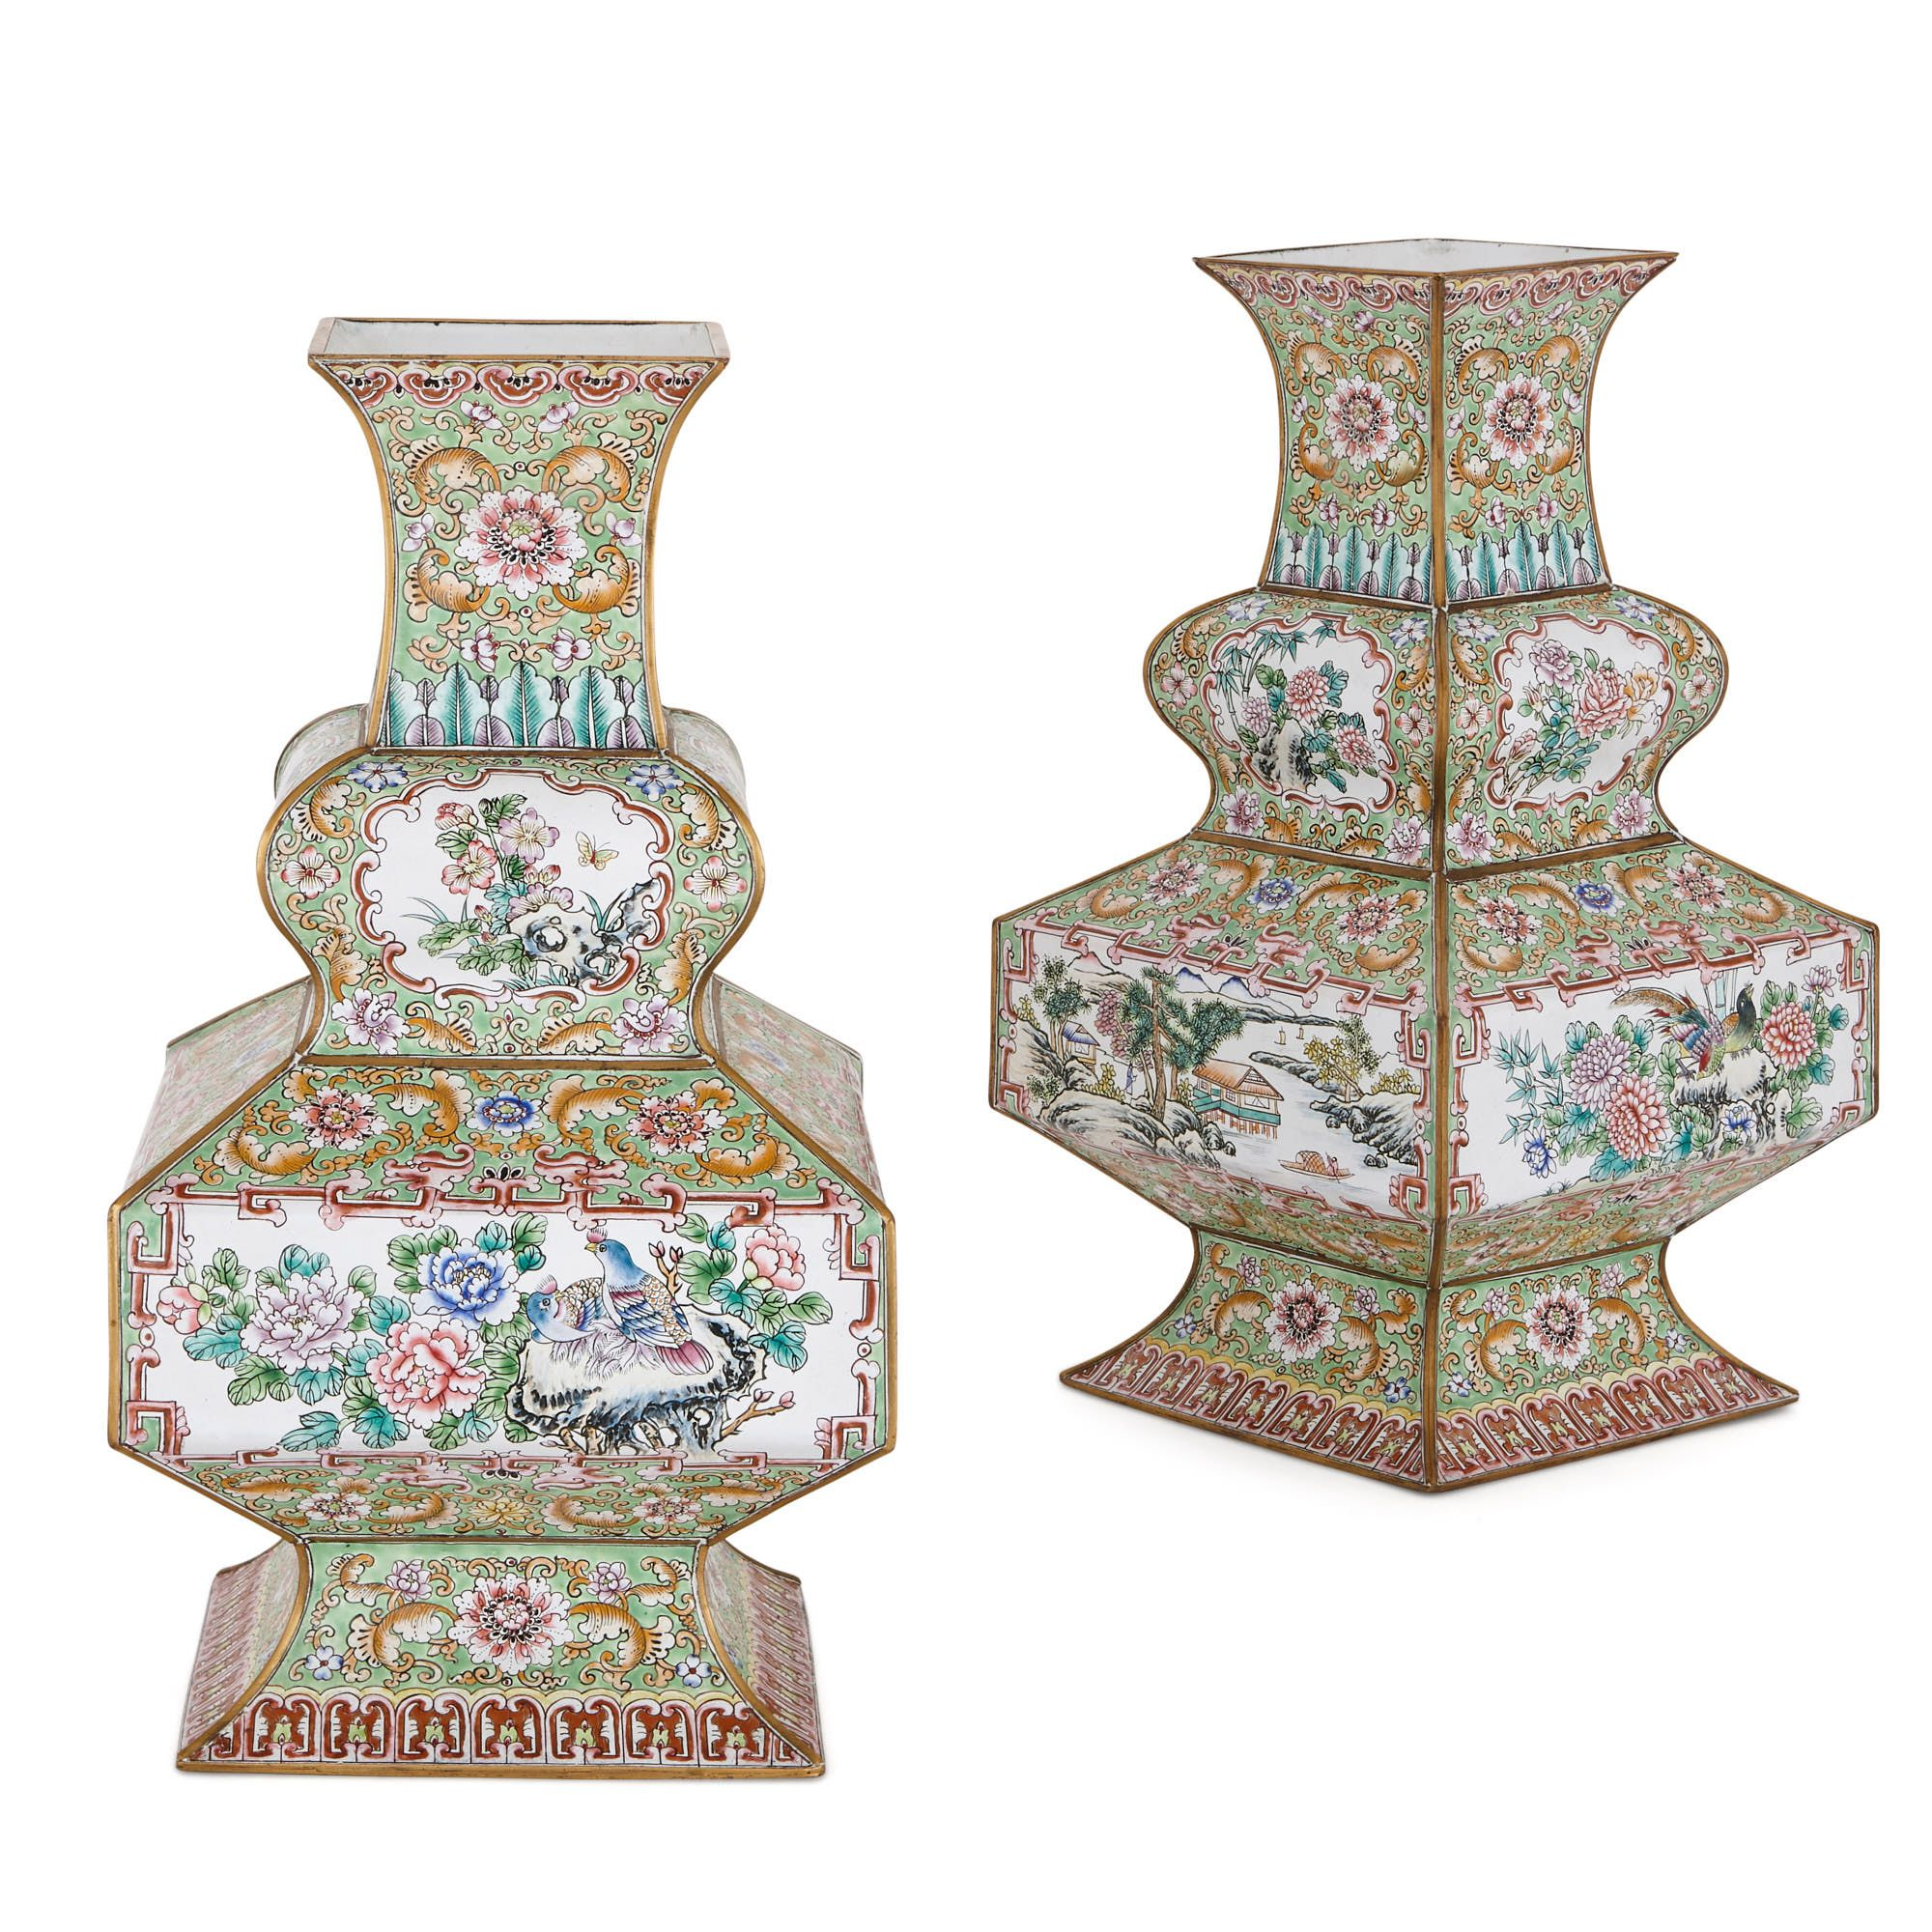 Pair Of Chinese Qing Dynasty Cloisonne Enamel Vases